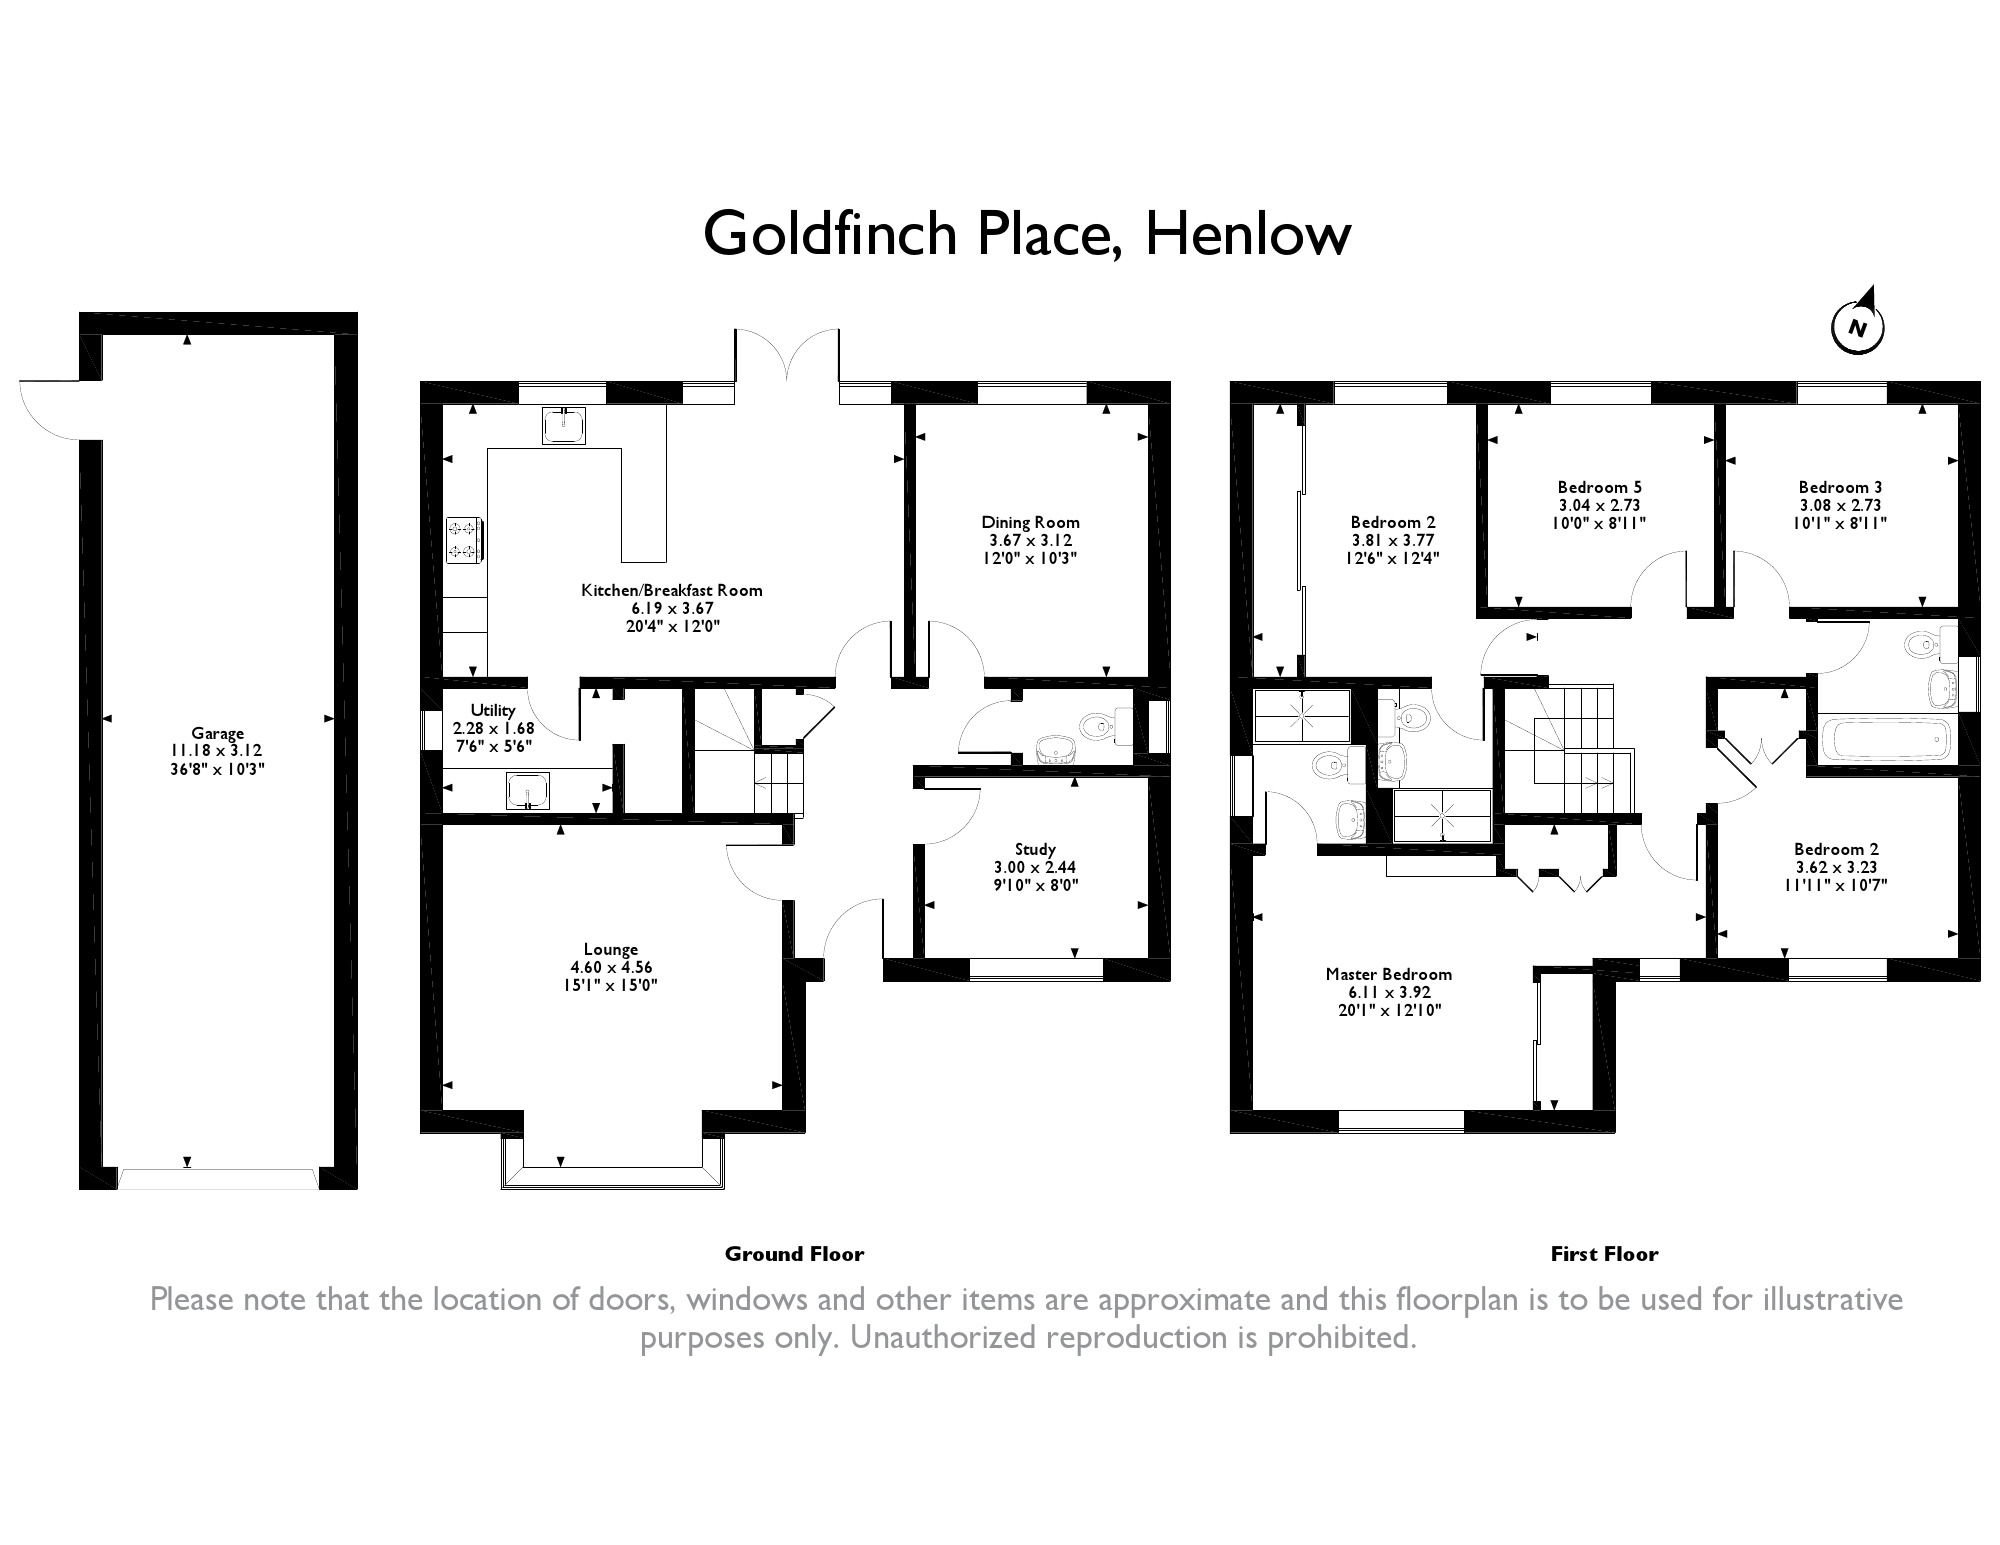 5 Bedrooms Detached house for sale in Goldfinch Place, Henlow SG16